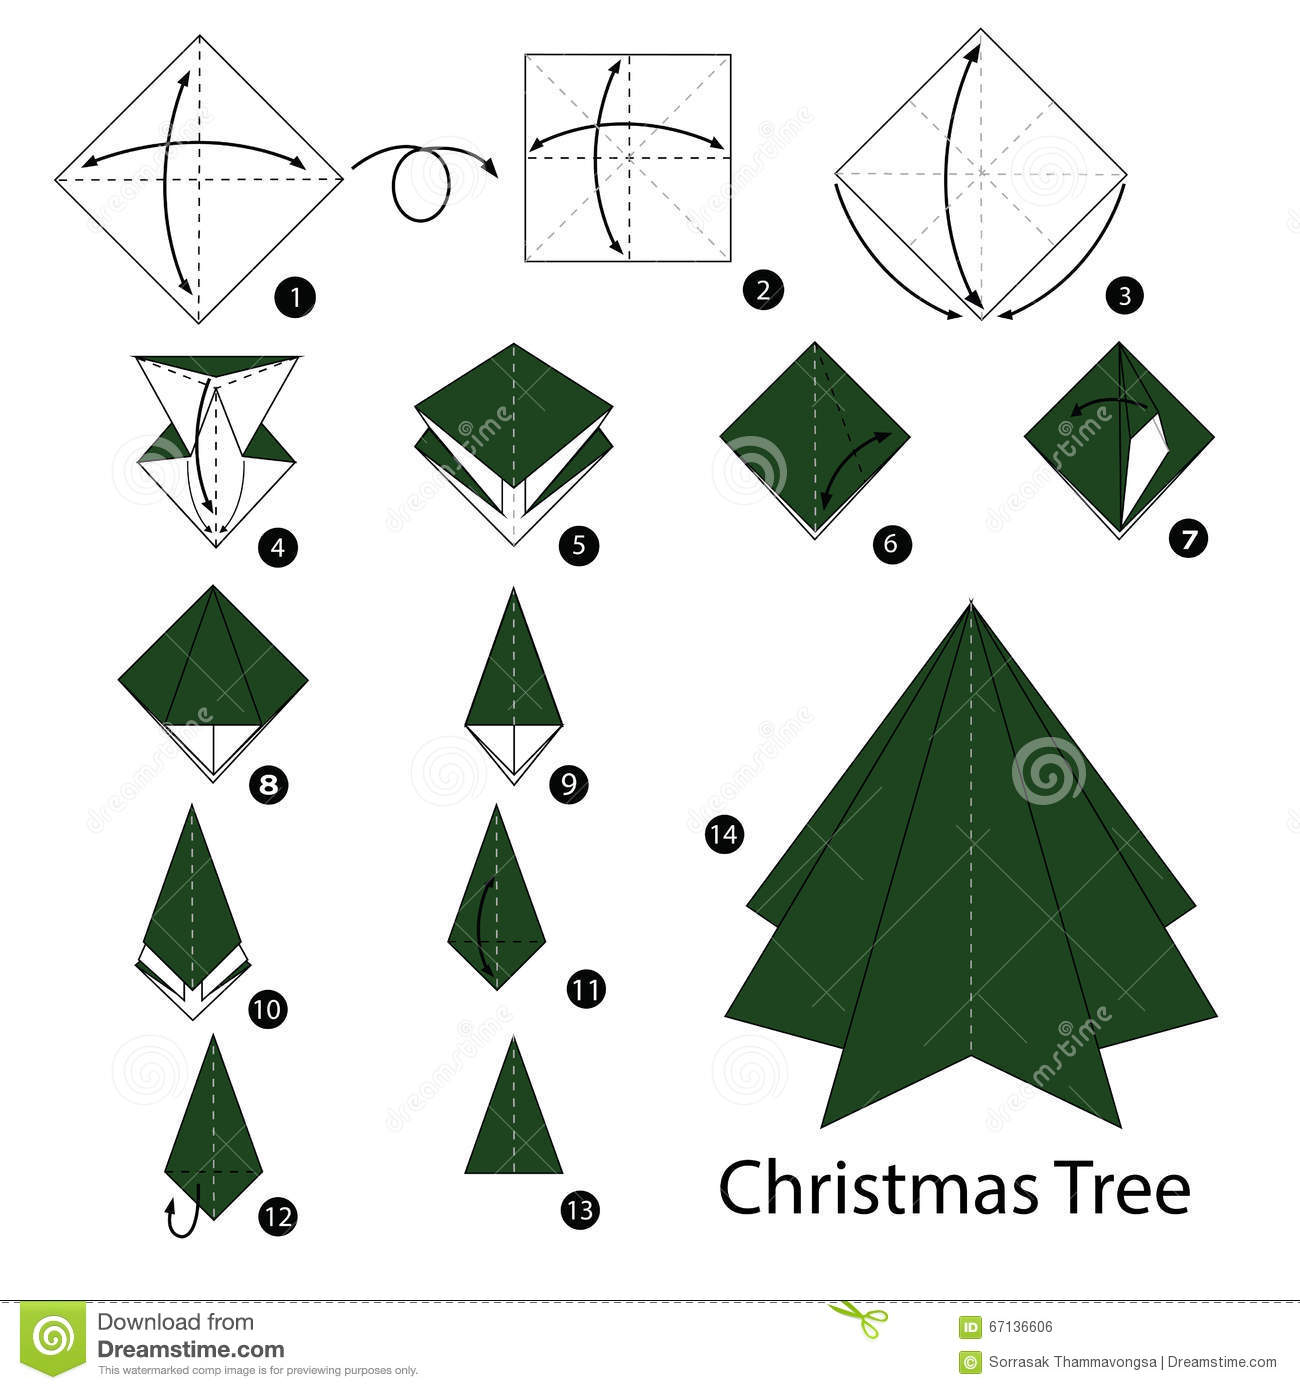 How to make a Christmas tree toy 84